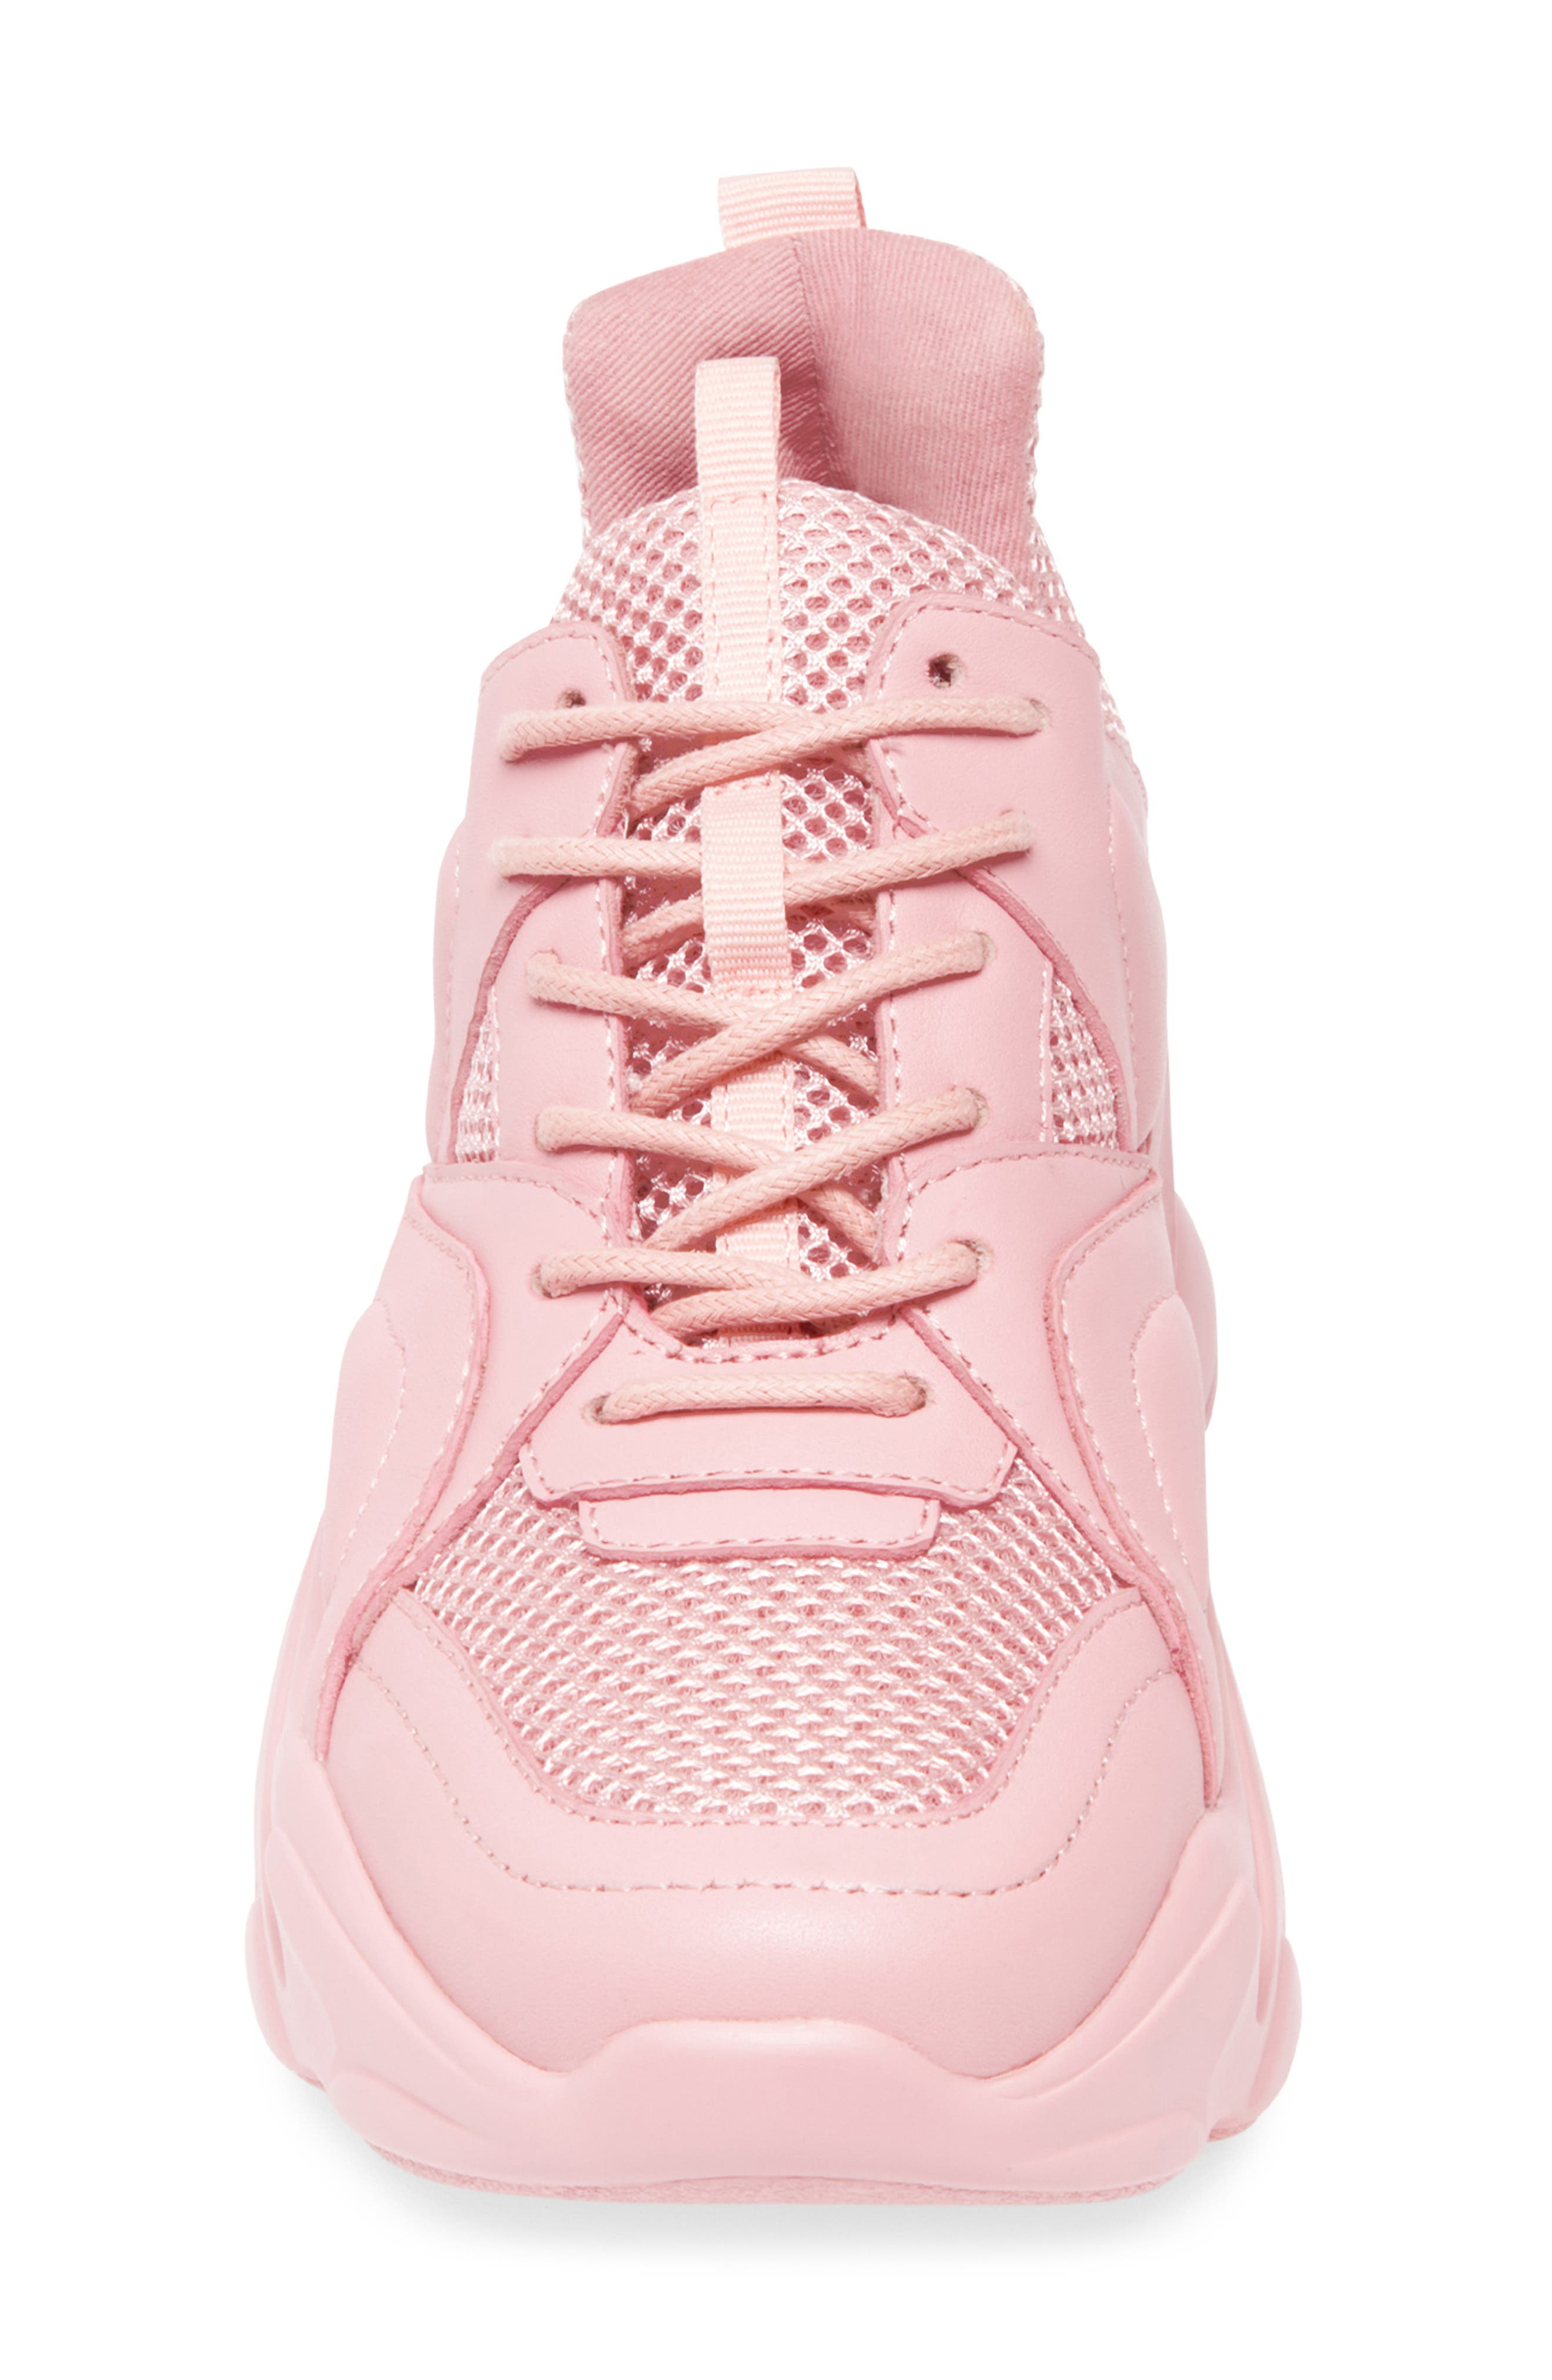 Movement Sneaker,                             Alternate thumbnail 4, color,                             PINK LEATHER